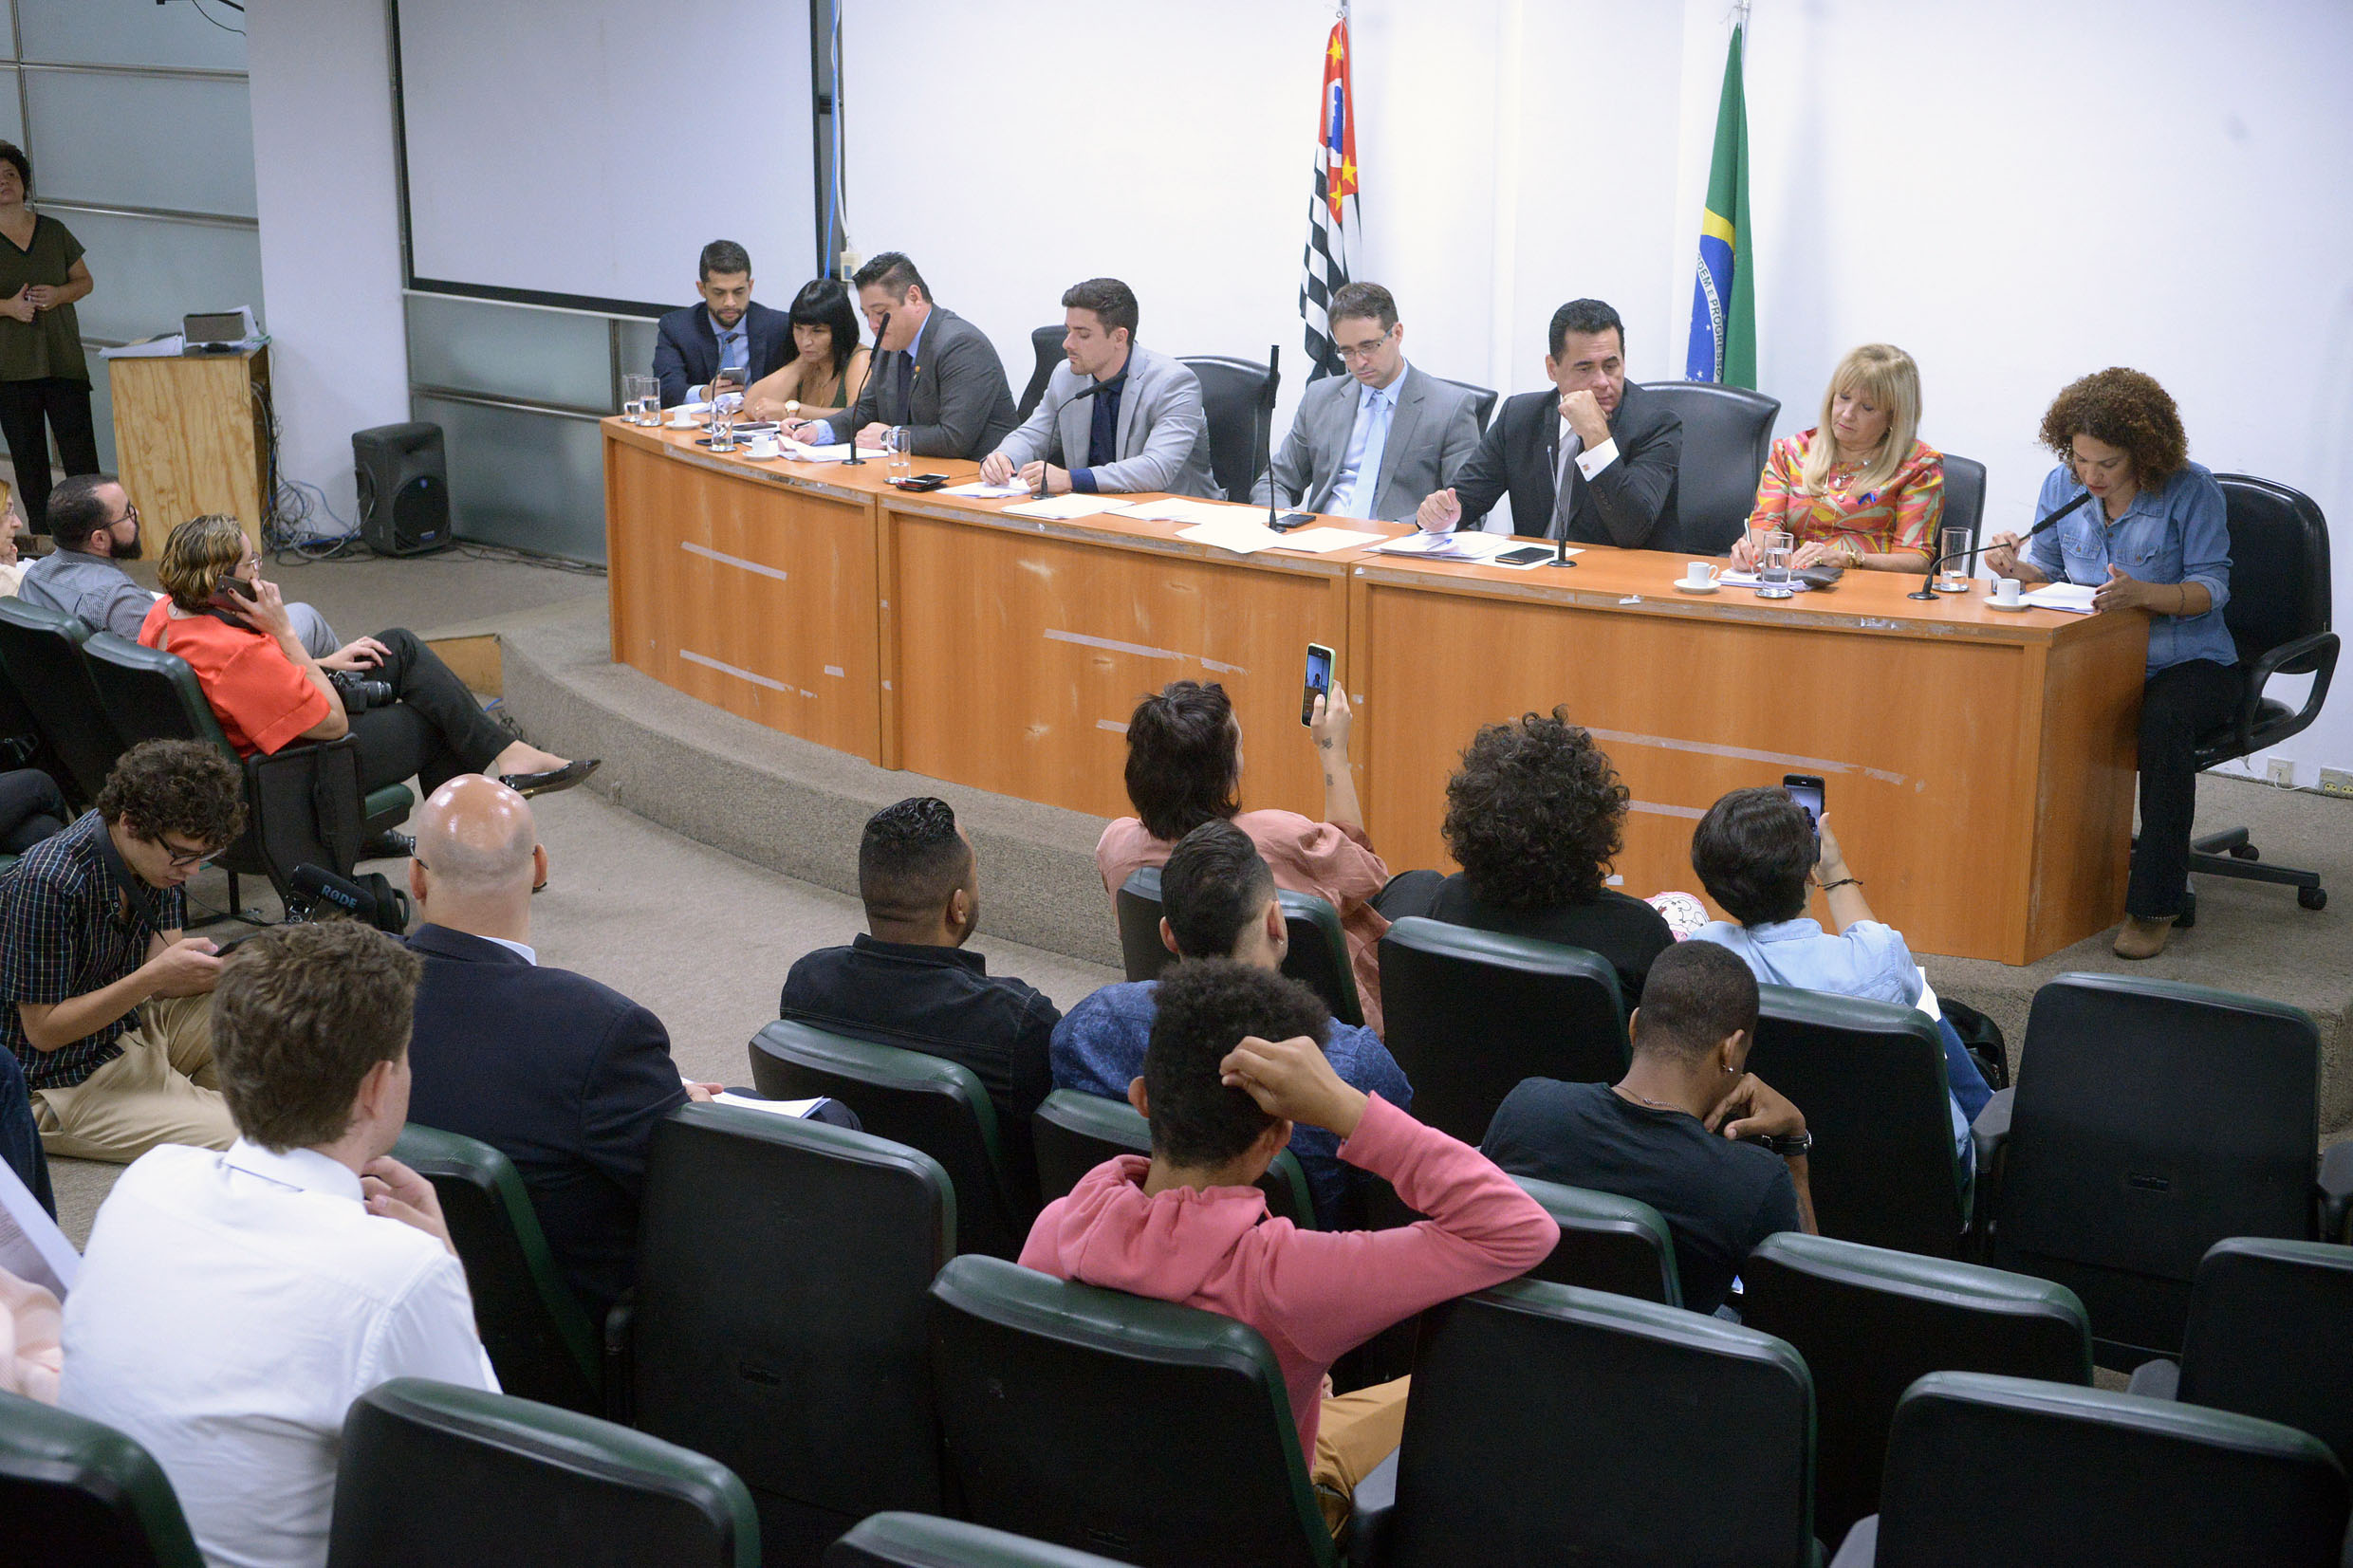 Parlamentares na CPI<a style='float:right' href='https://www3.al.sp.gov.br/repositorio/noticia/N-11-2019/fg243432.jpg' target=_blank><img src='/_img/material-file-download-white.png' width='14px' alt='Clique para baixar a imagem'></a>